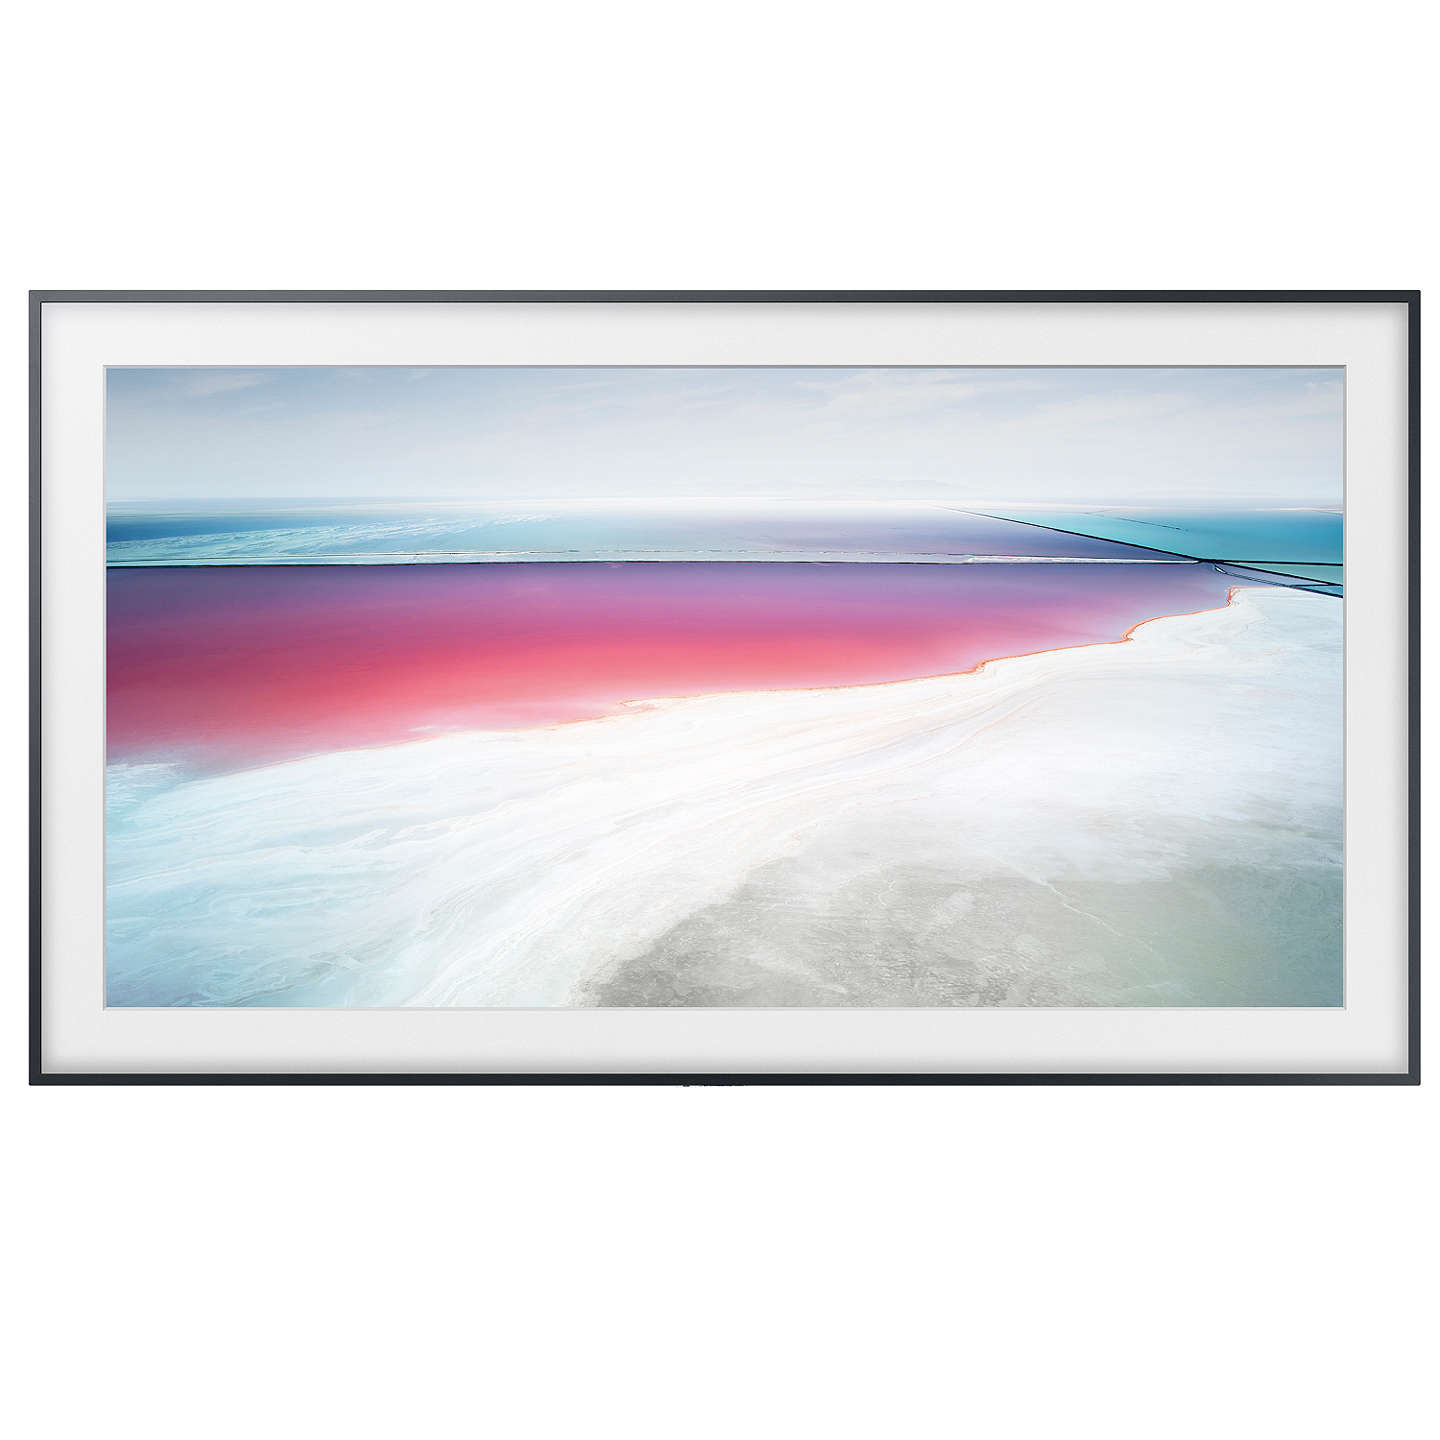 "BuySamsung The Frame Art Mode TV, 55"", Ultra HD Certified Online at johnlewis.com"